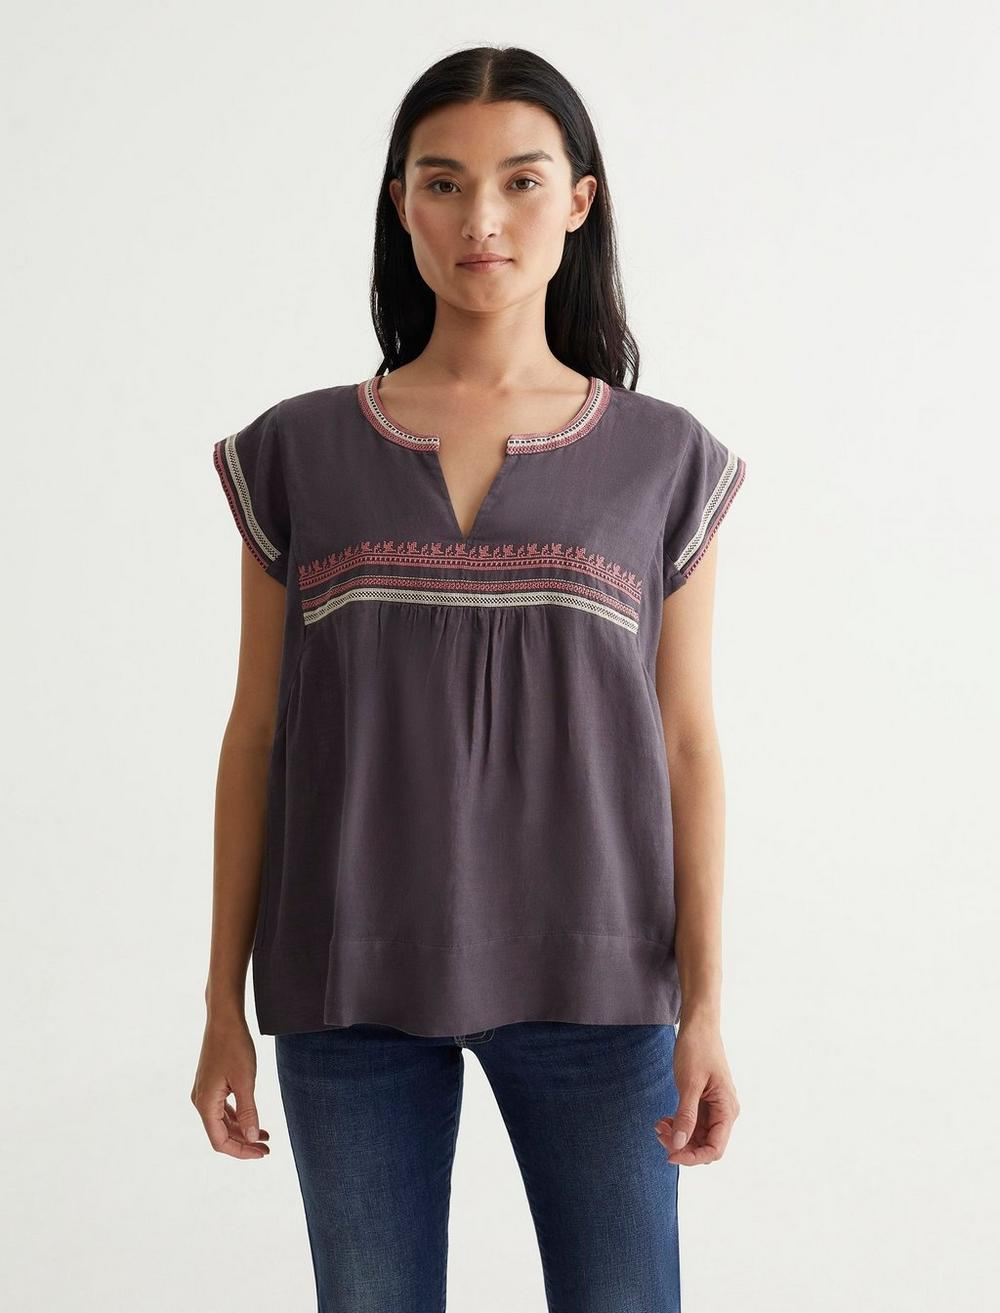 EMBROIDERED WOVEN TOP, image 1